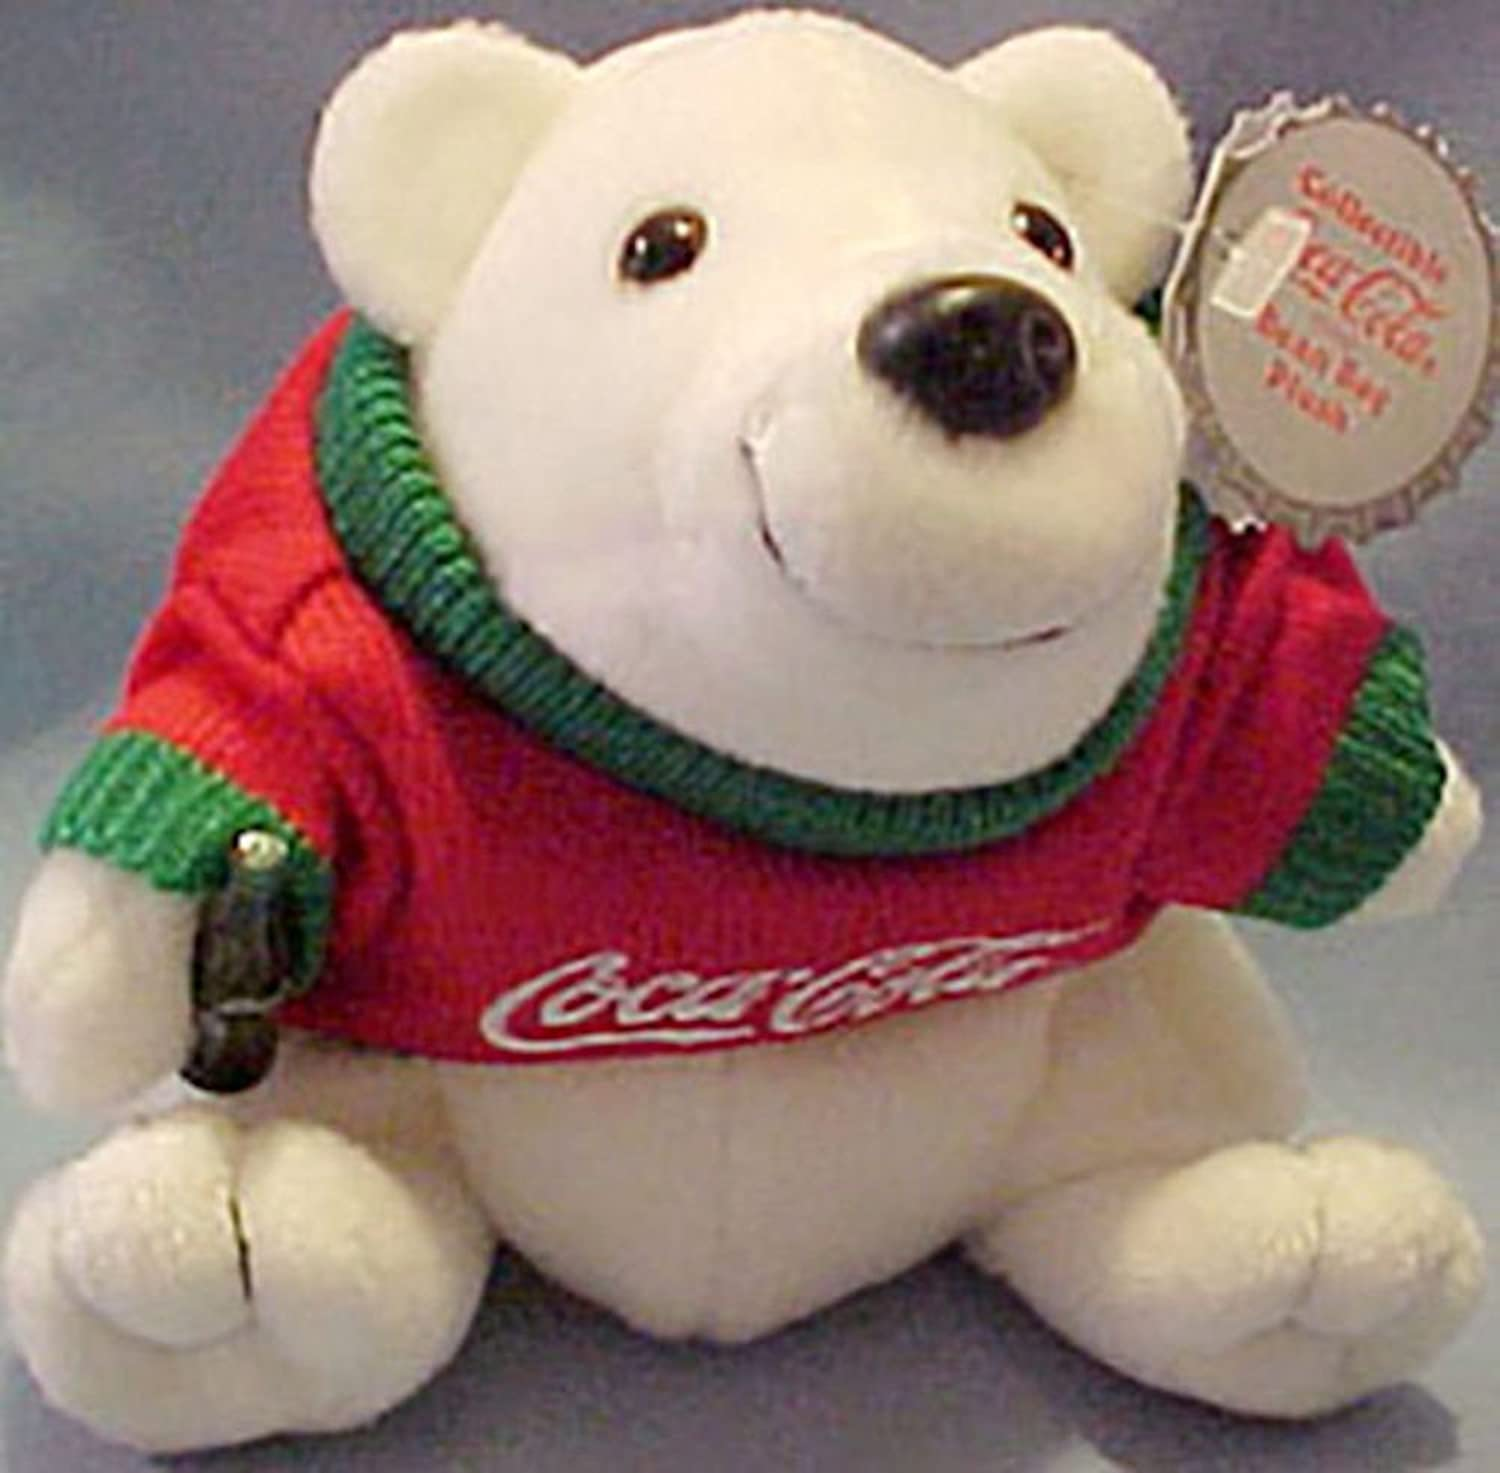 Coca Cola Polar Bear In Red & Green Sweater w  Logo  0116 by Cavanaugh Group by Coca-Cola